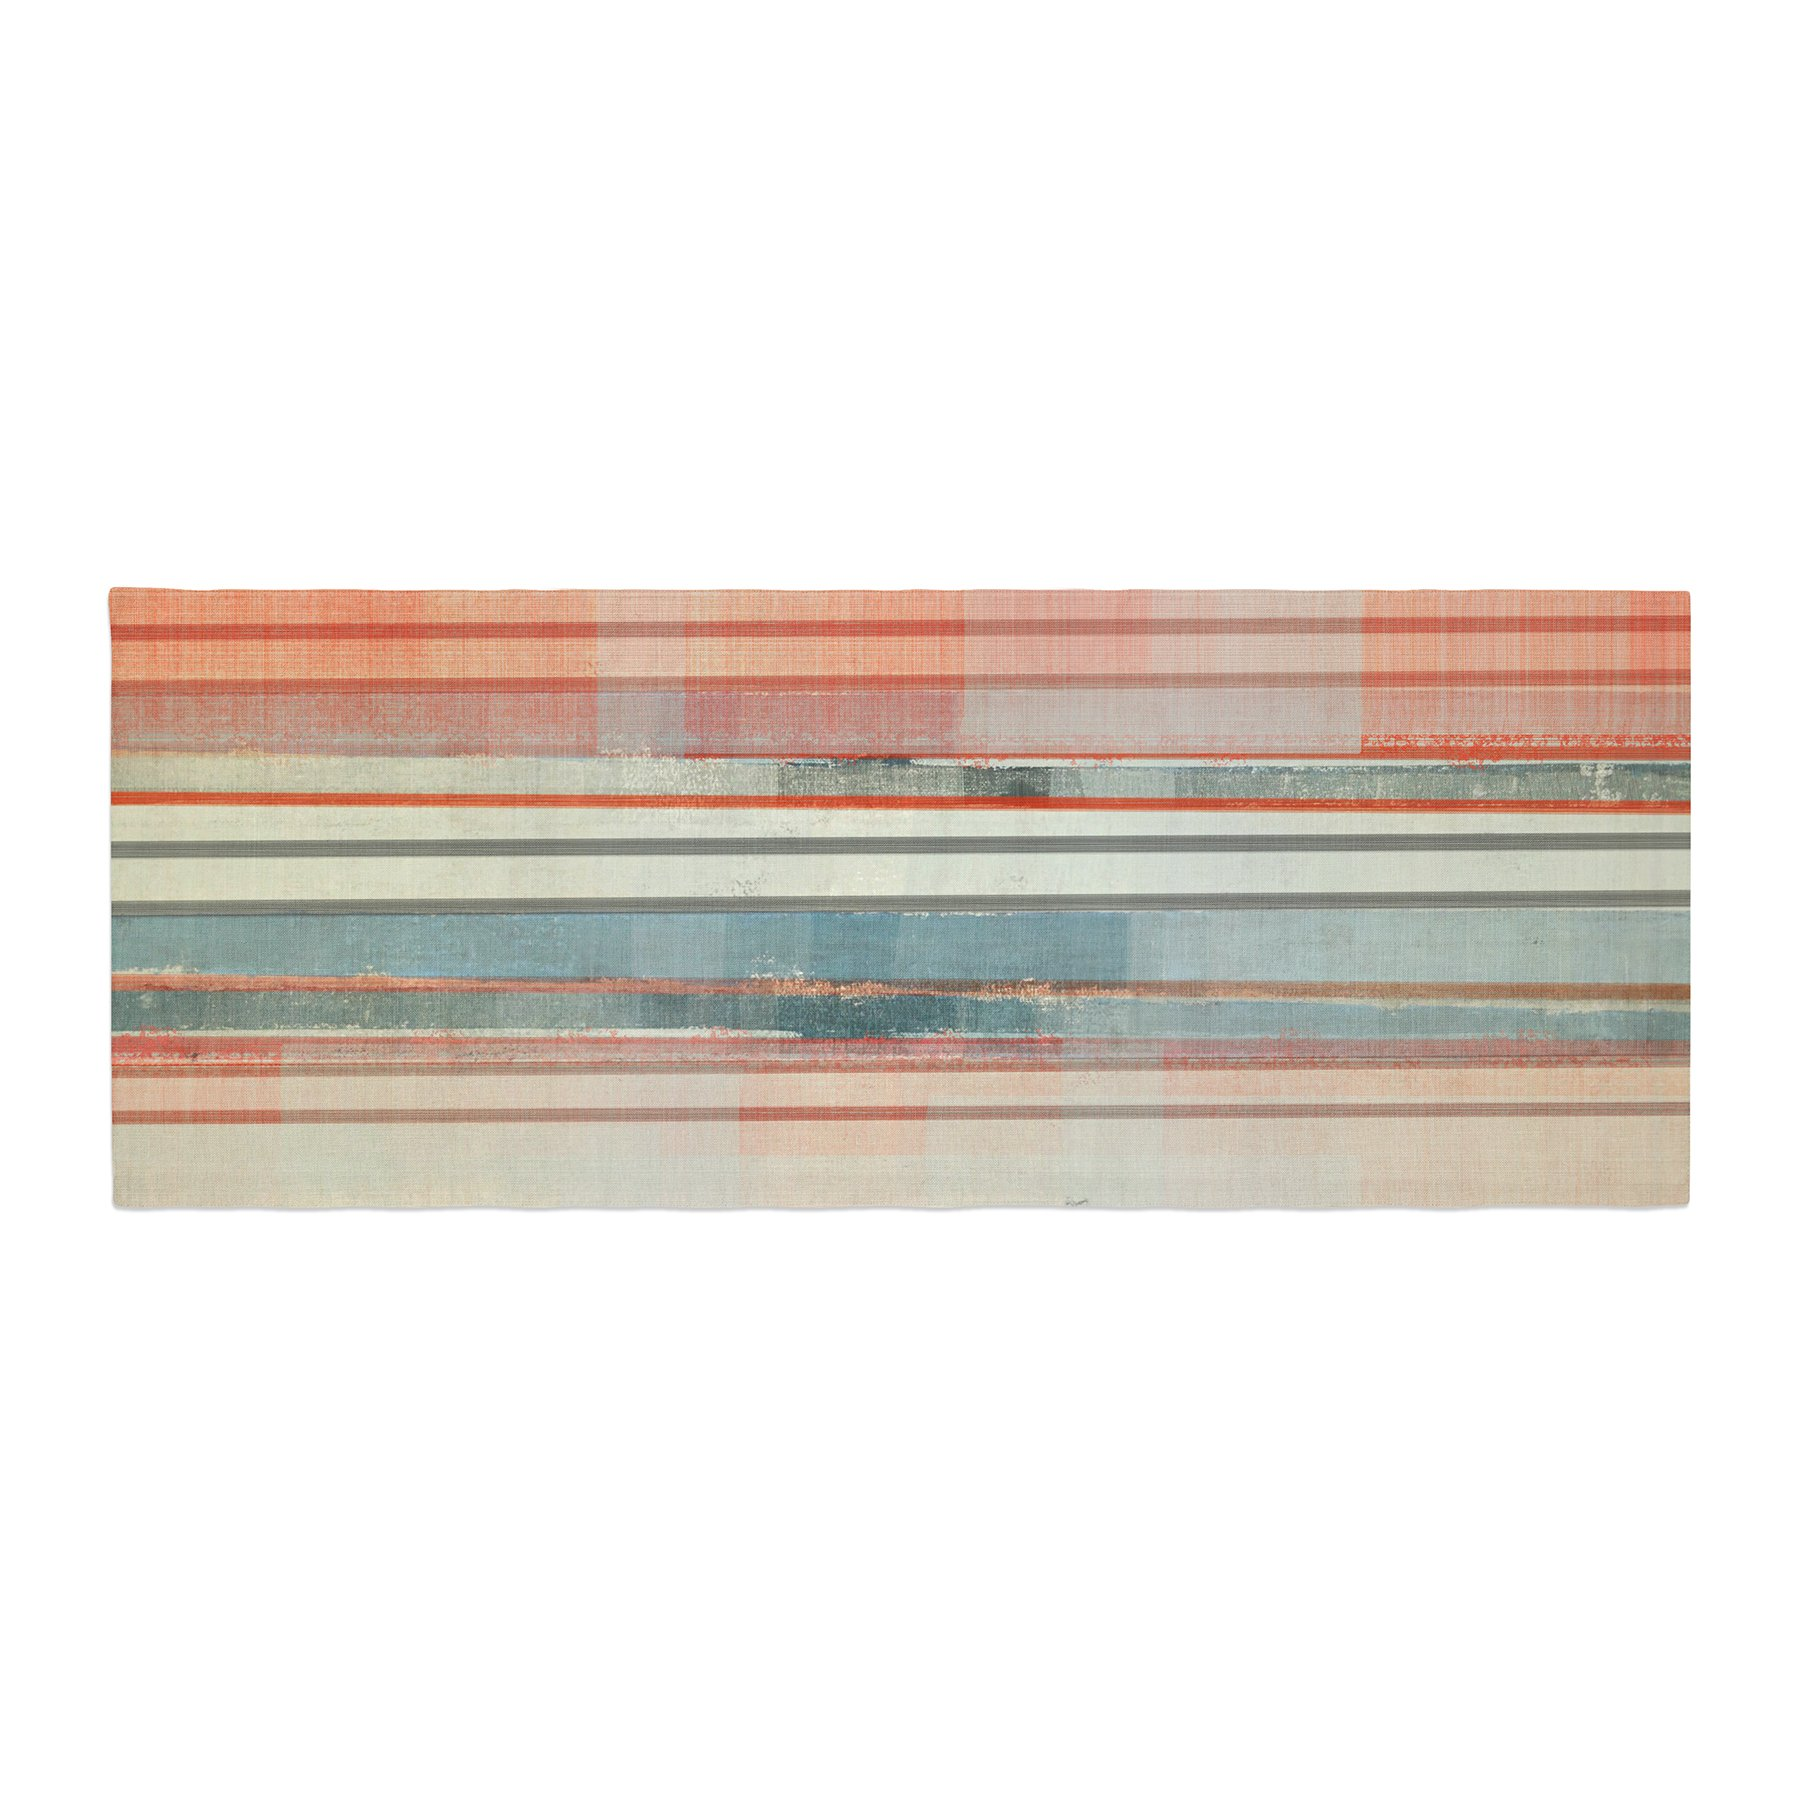 Kess InHouse CarolLynn Tice Patton Orange Teal Bed Runner, 34'' x 86''